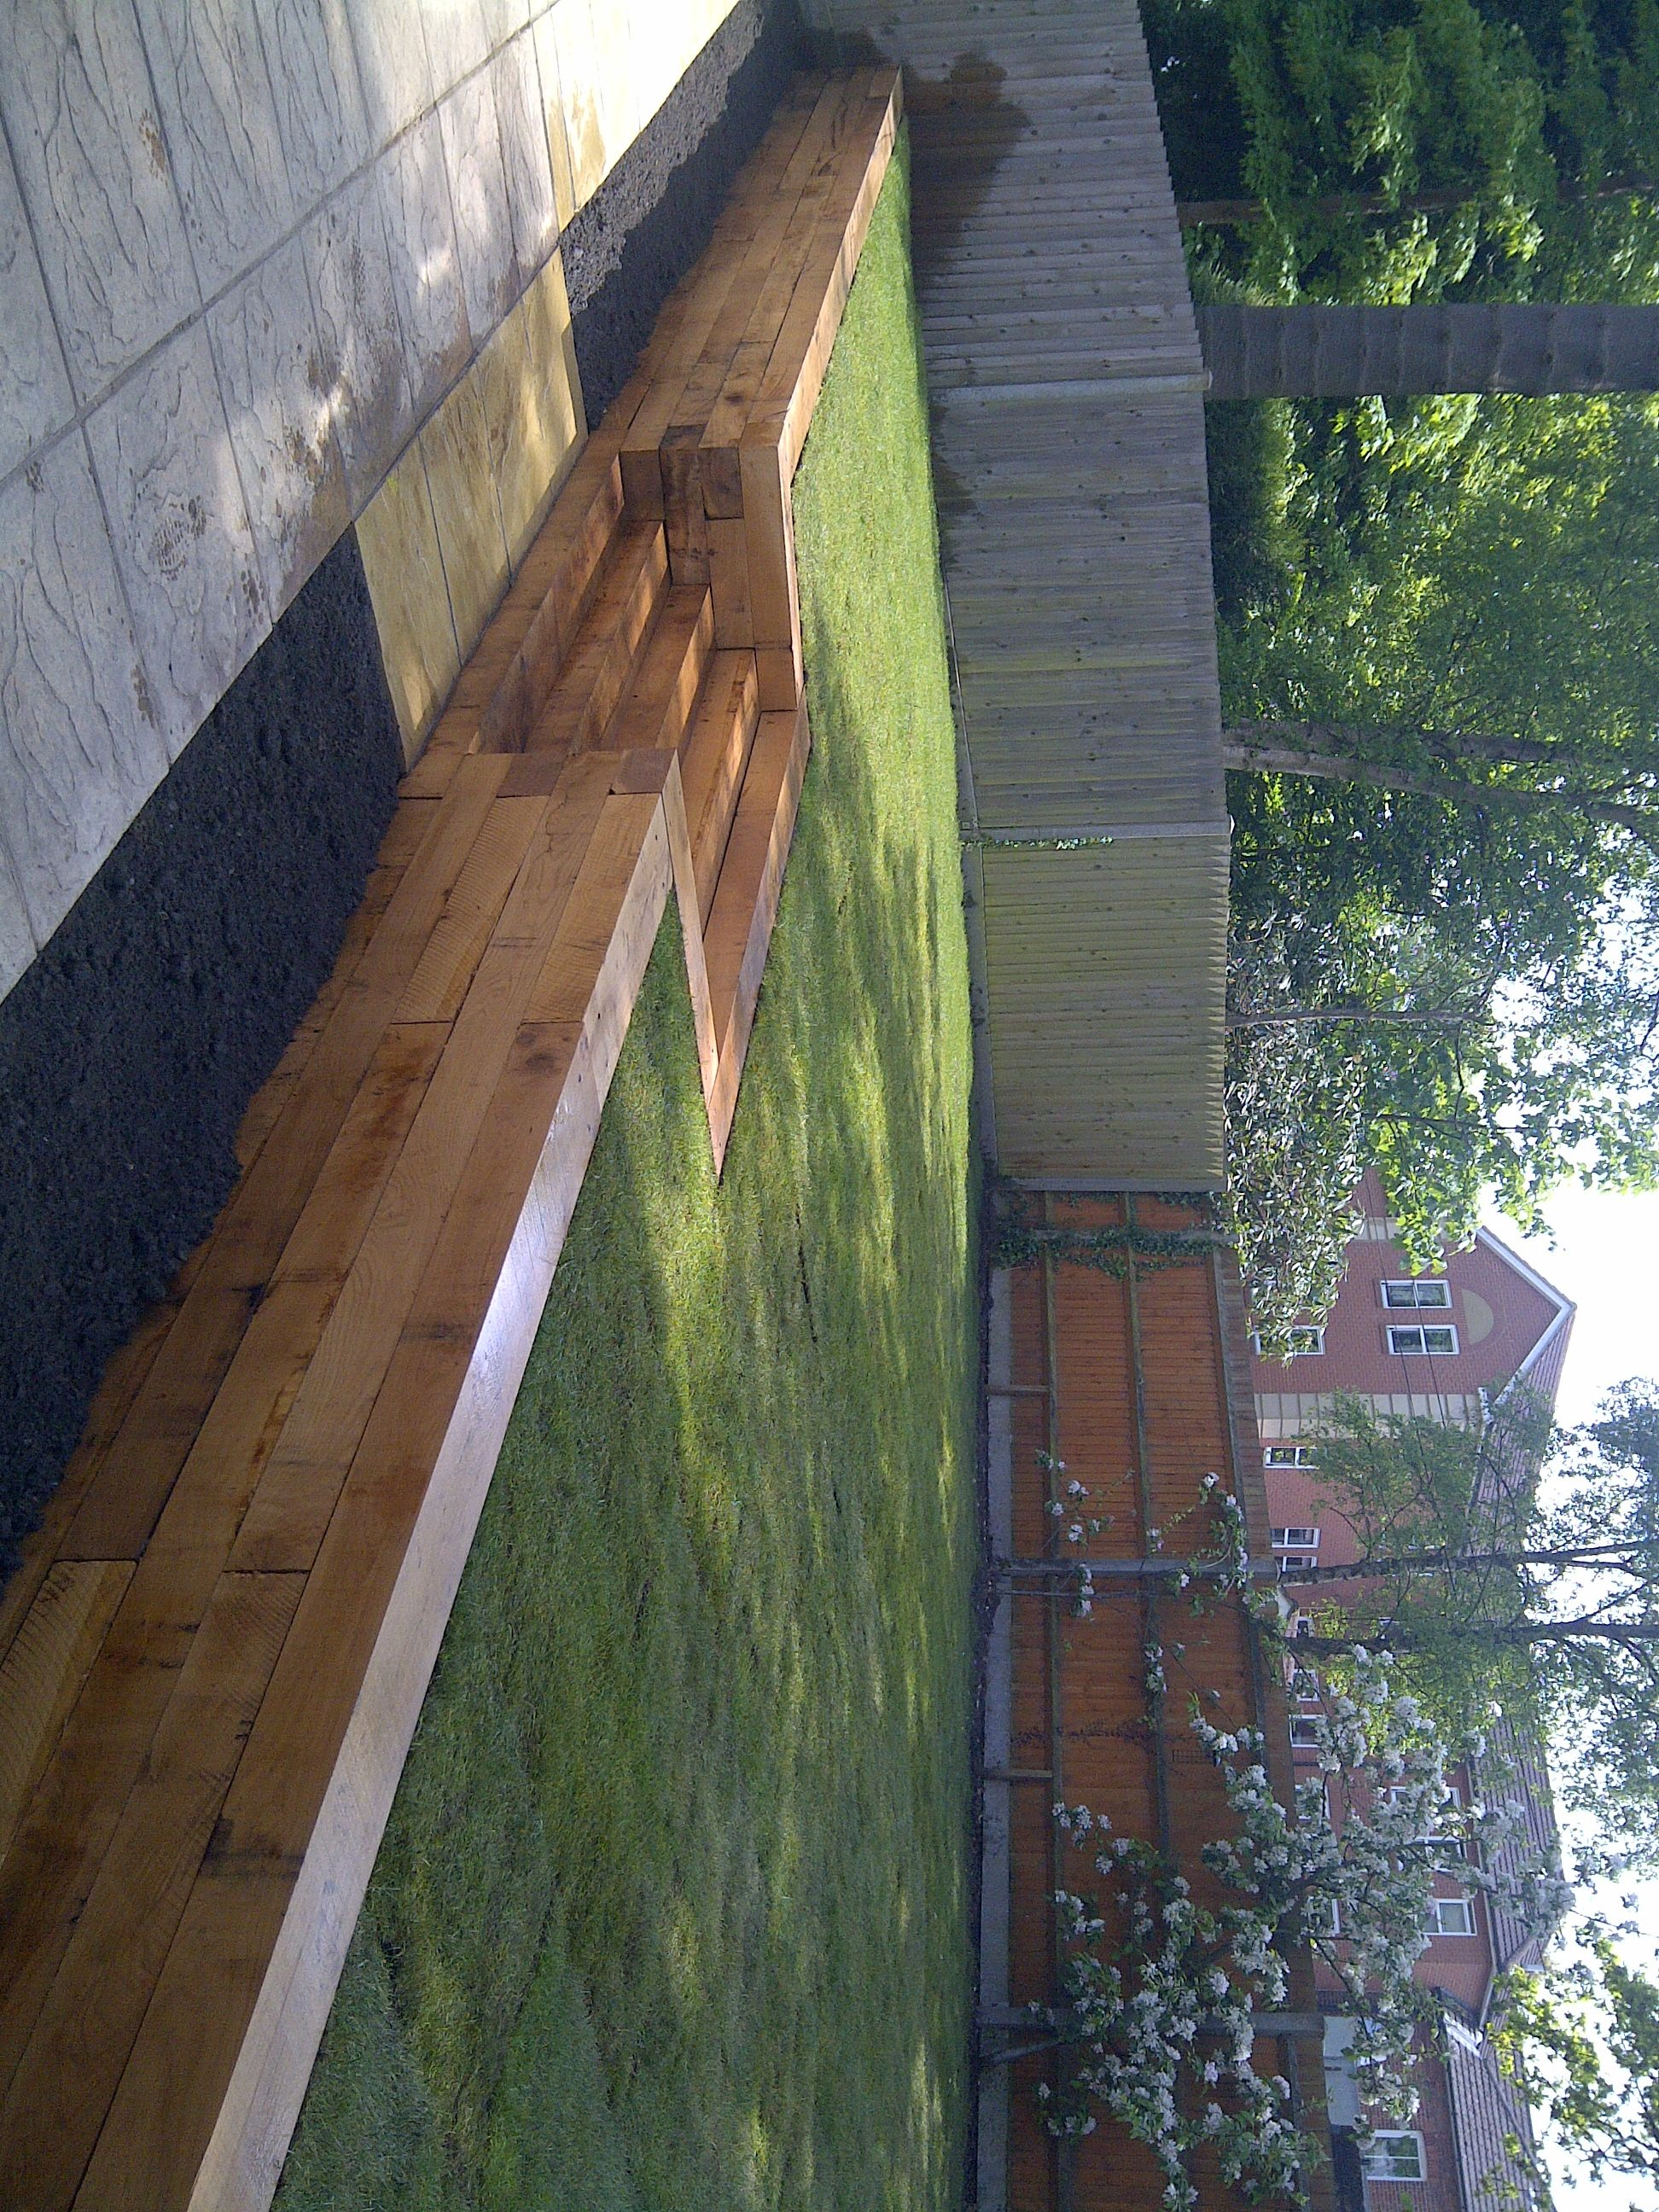 patios paths oak sleeper walls brick walls garden design hard landscaping - Garden Design Using Sleepers